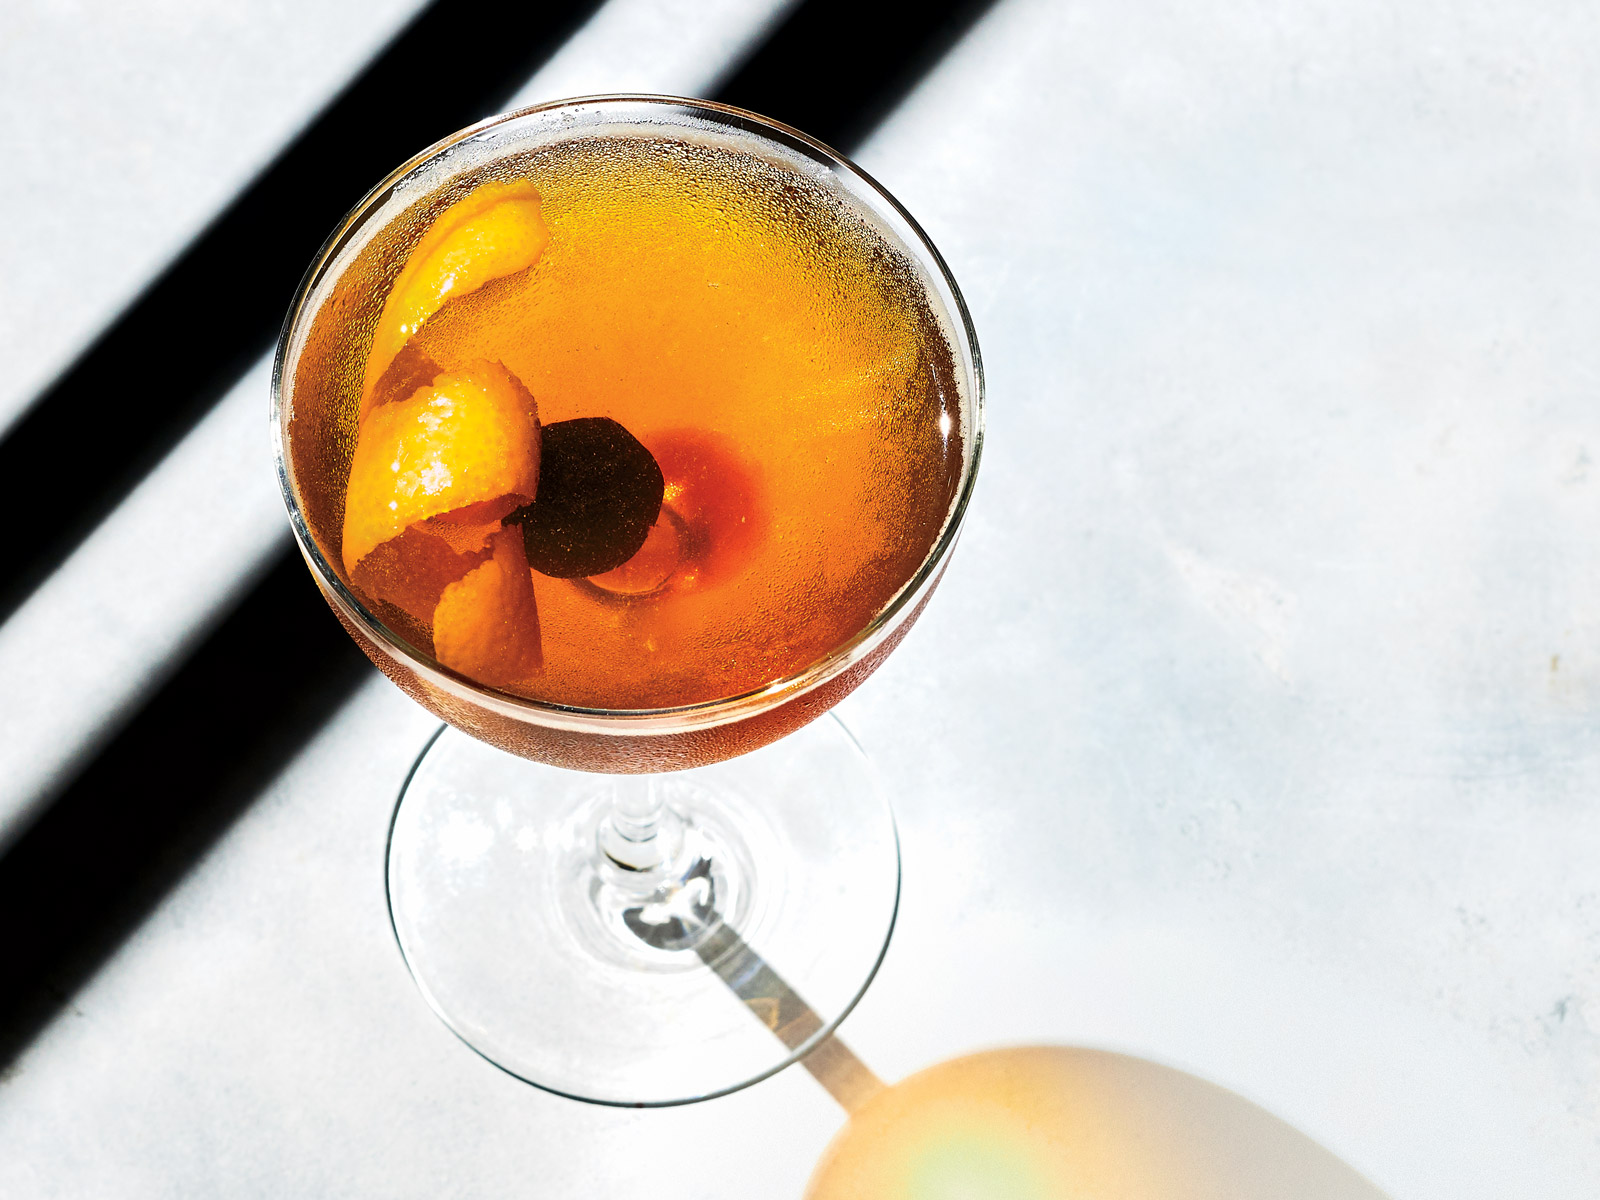 At San Francisco's Linden Room, Ron Boyd created a floral white vermouth featuring chamomile, dried artichokes, and coriander, which he stirs into his twist on the classic Rob Roy cocktail.